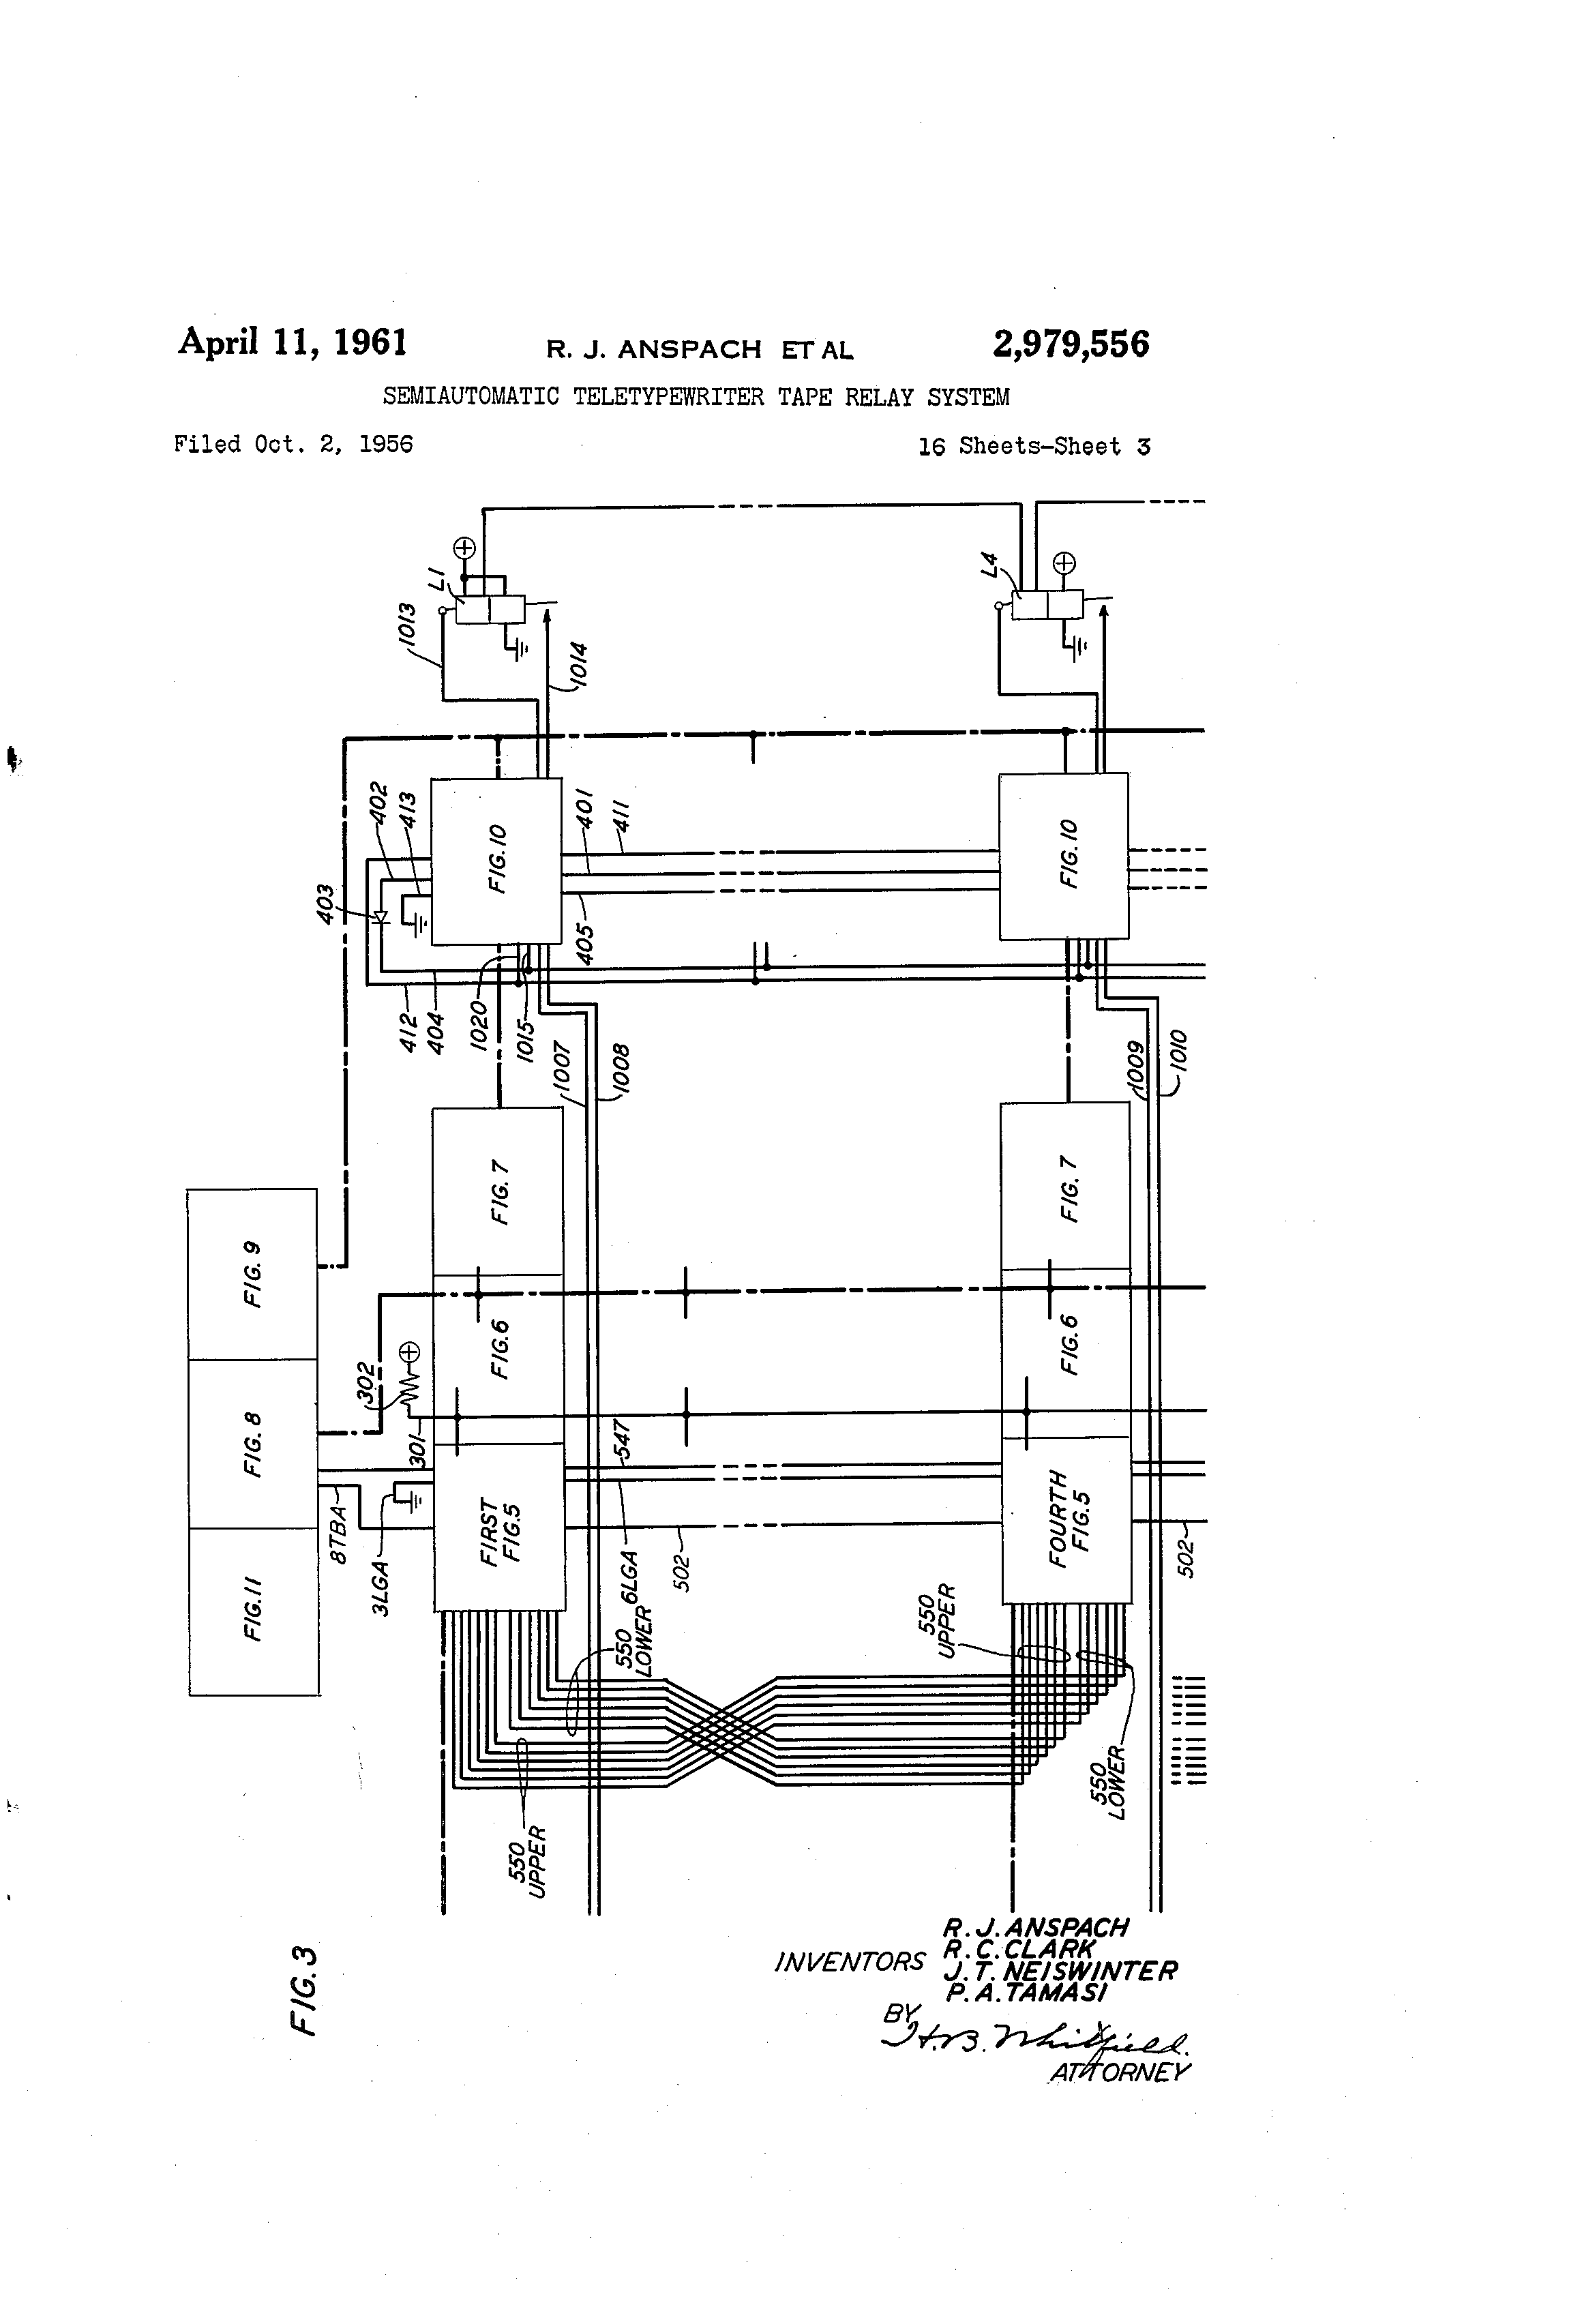 Patent Us2979556 Semiautomatic Teletypewriter Tape Relay System In This Circuit A Nonlocking Push Switch Is Used To Activate Load Drawing